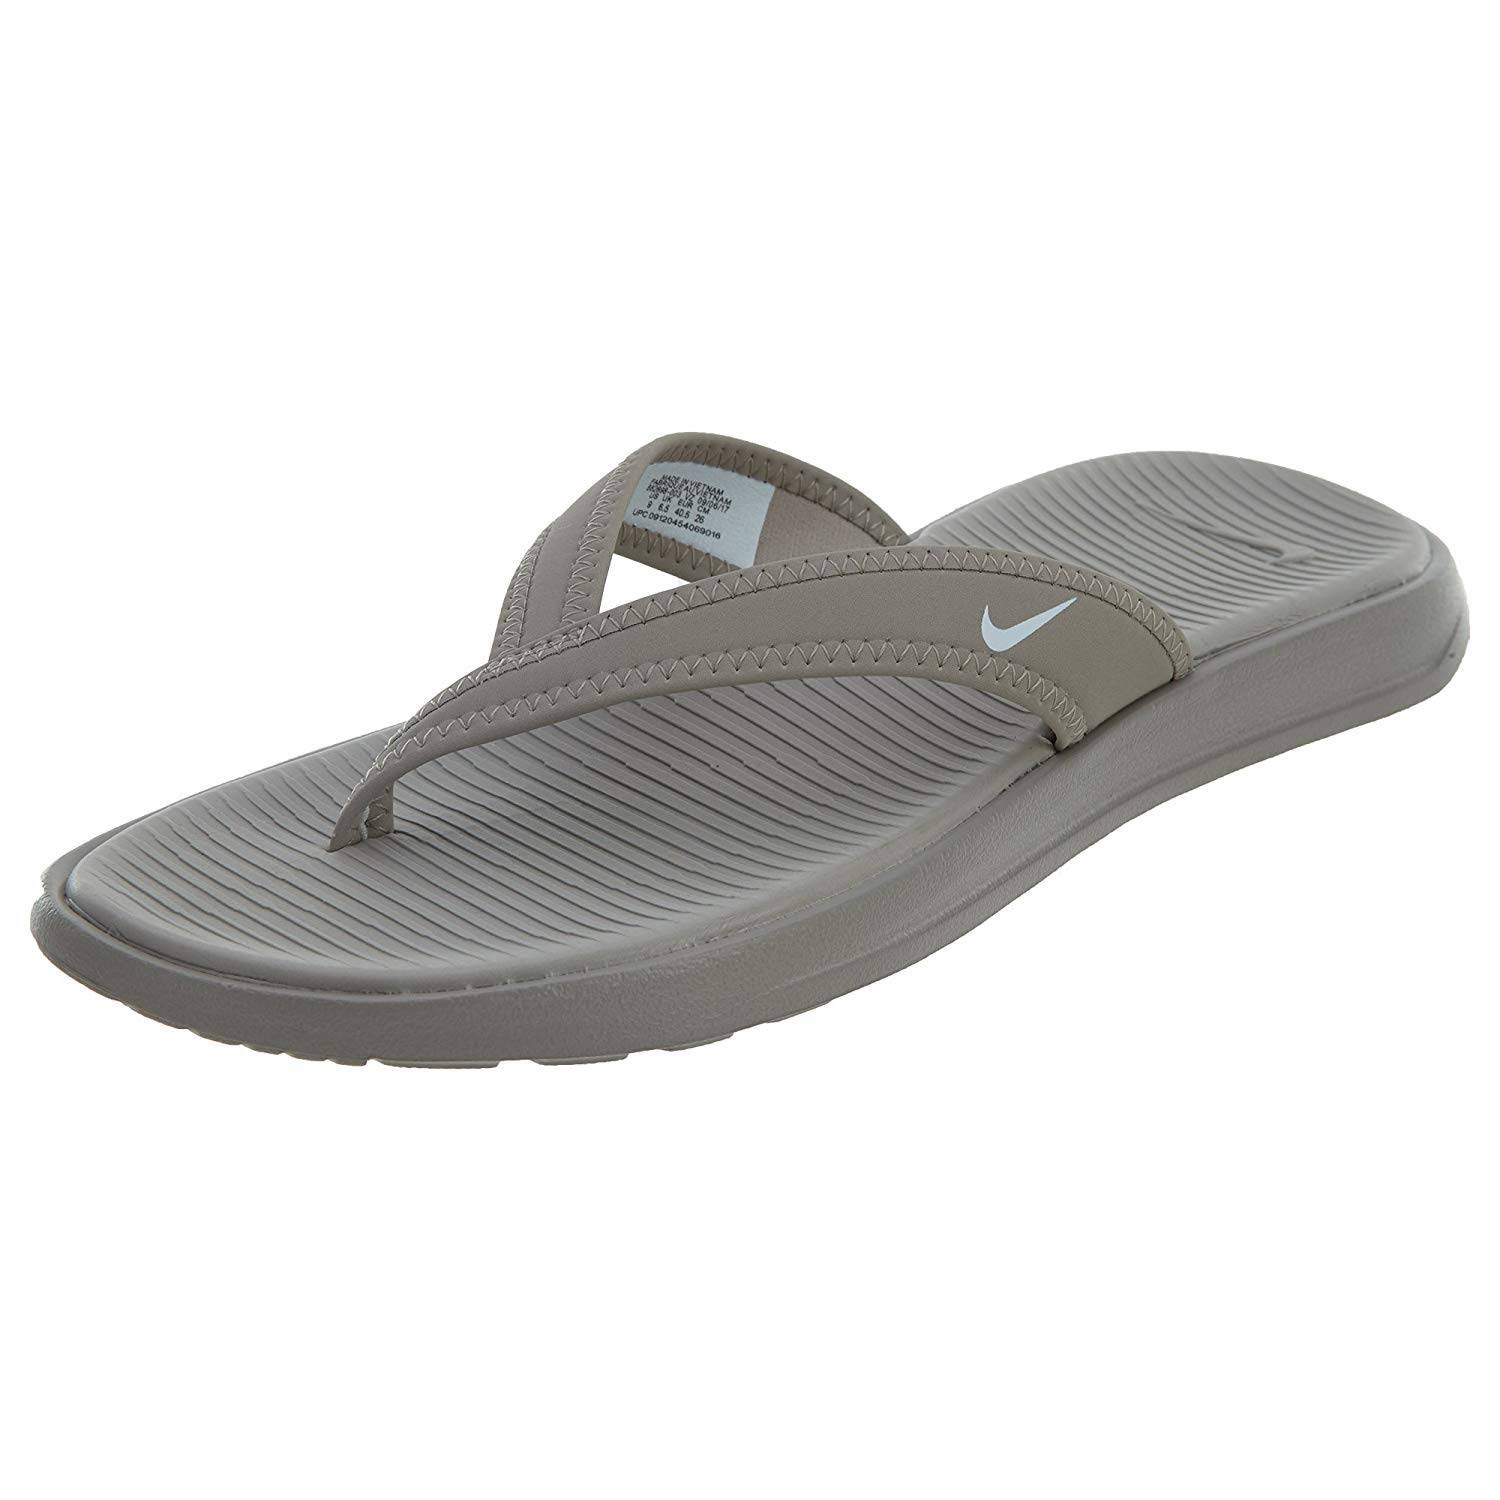 Mujer Tamaño Ultra De Nike Zapatos Thong 7 882698003 Celso AncnqOF